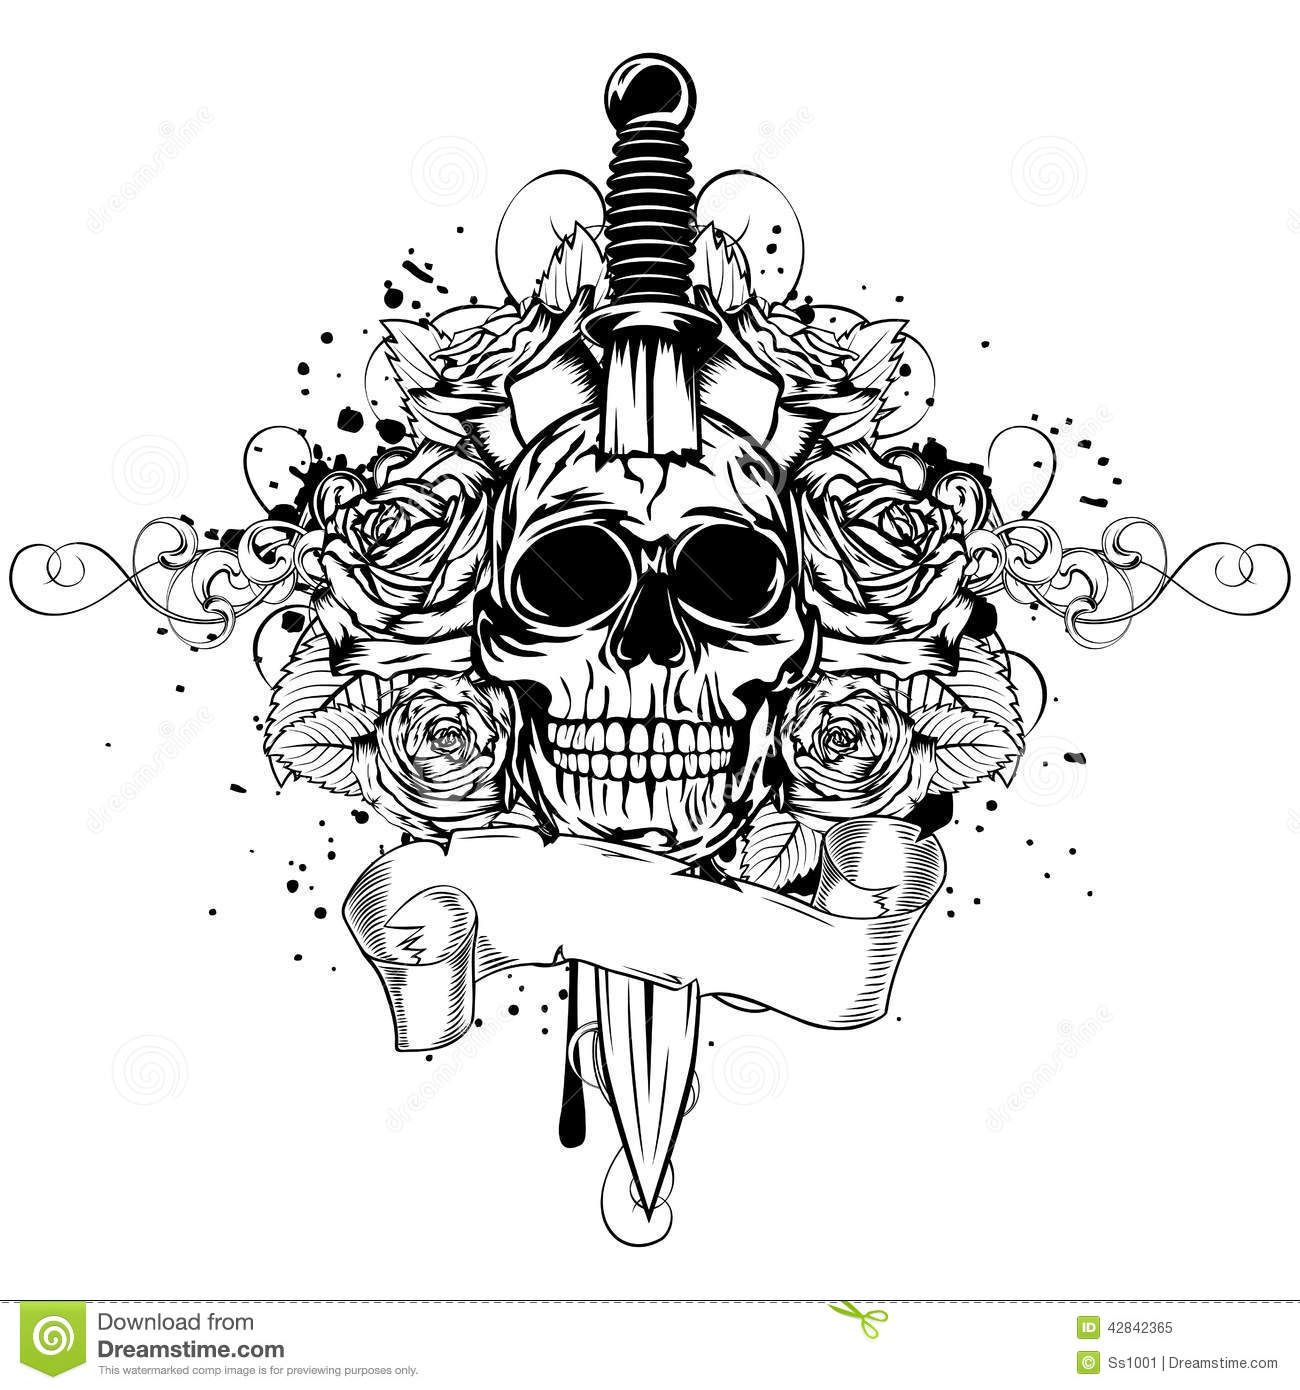 Related image Vector illustration, Skull, Broken sword